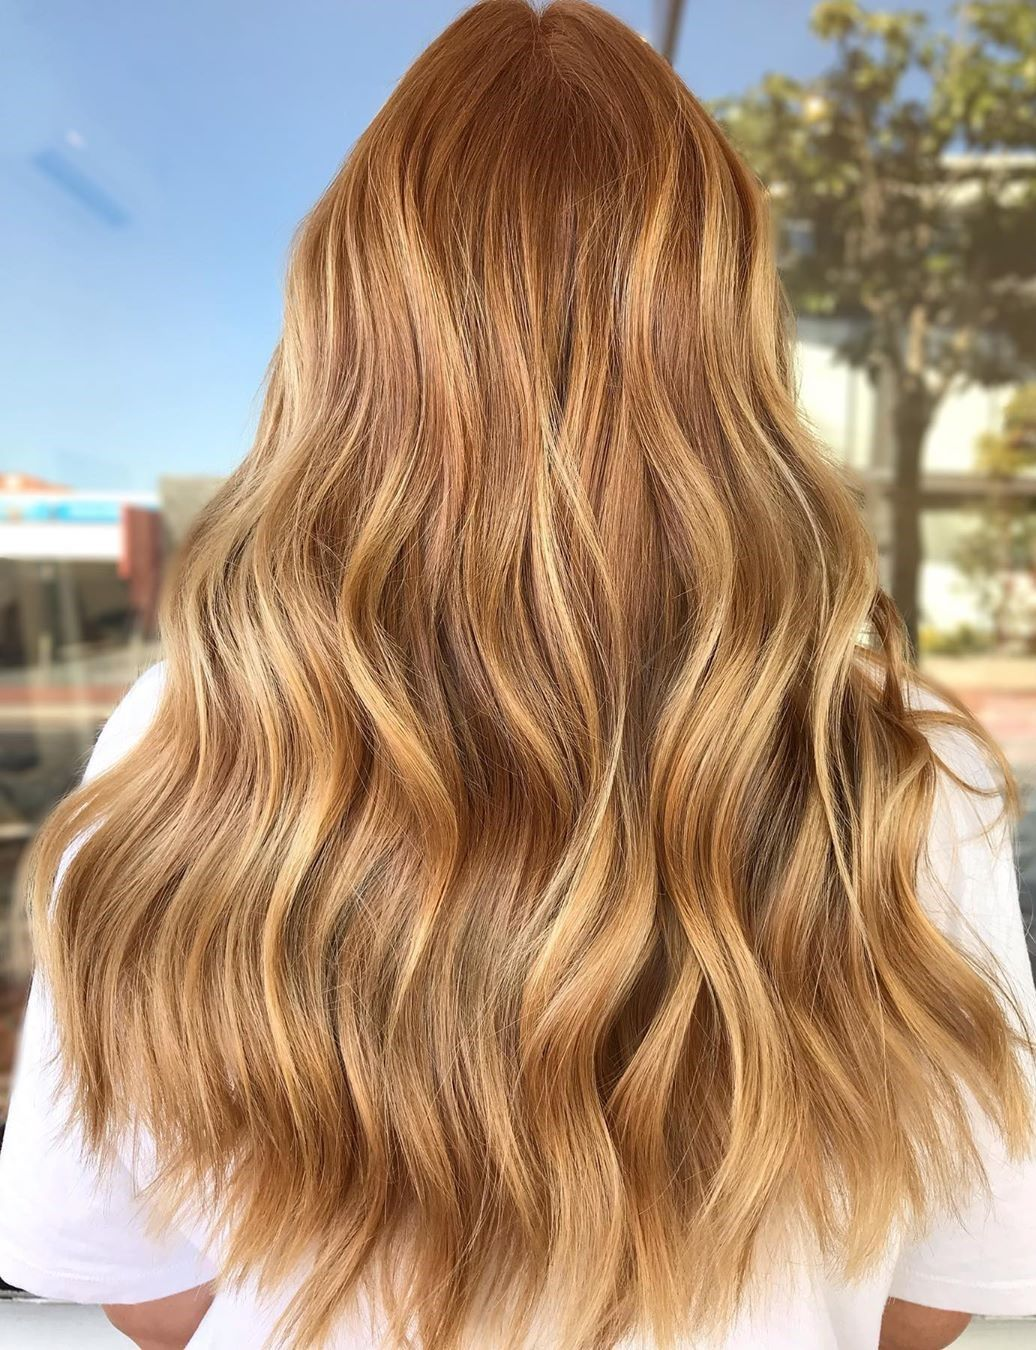 30 Trendy Strawberry Blonde Hair Colors & Styles f